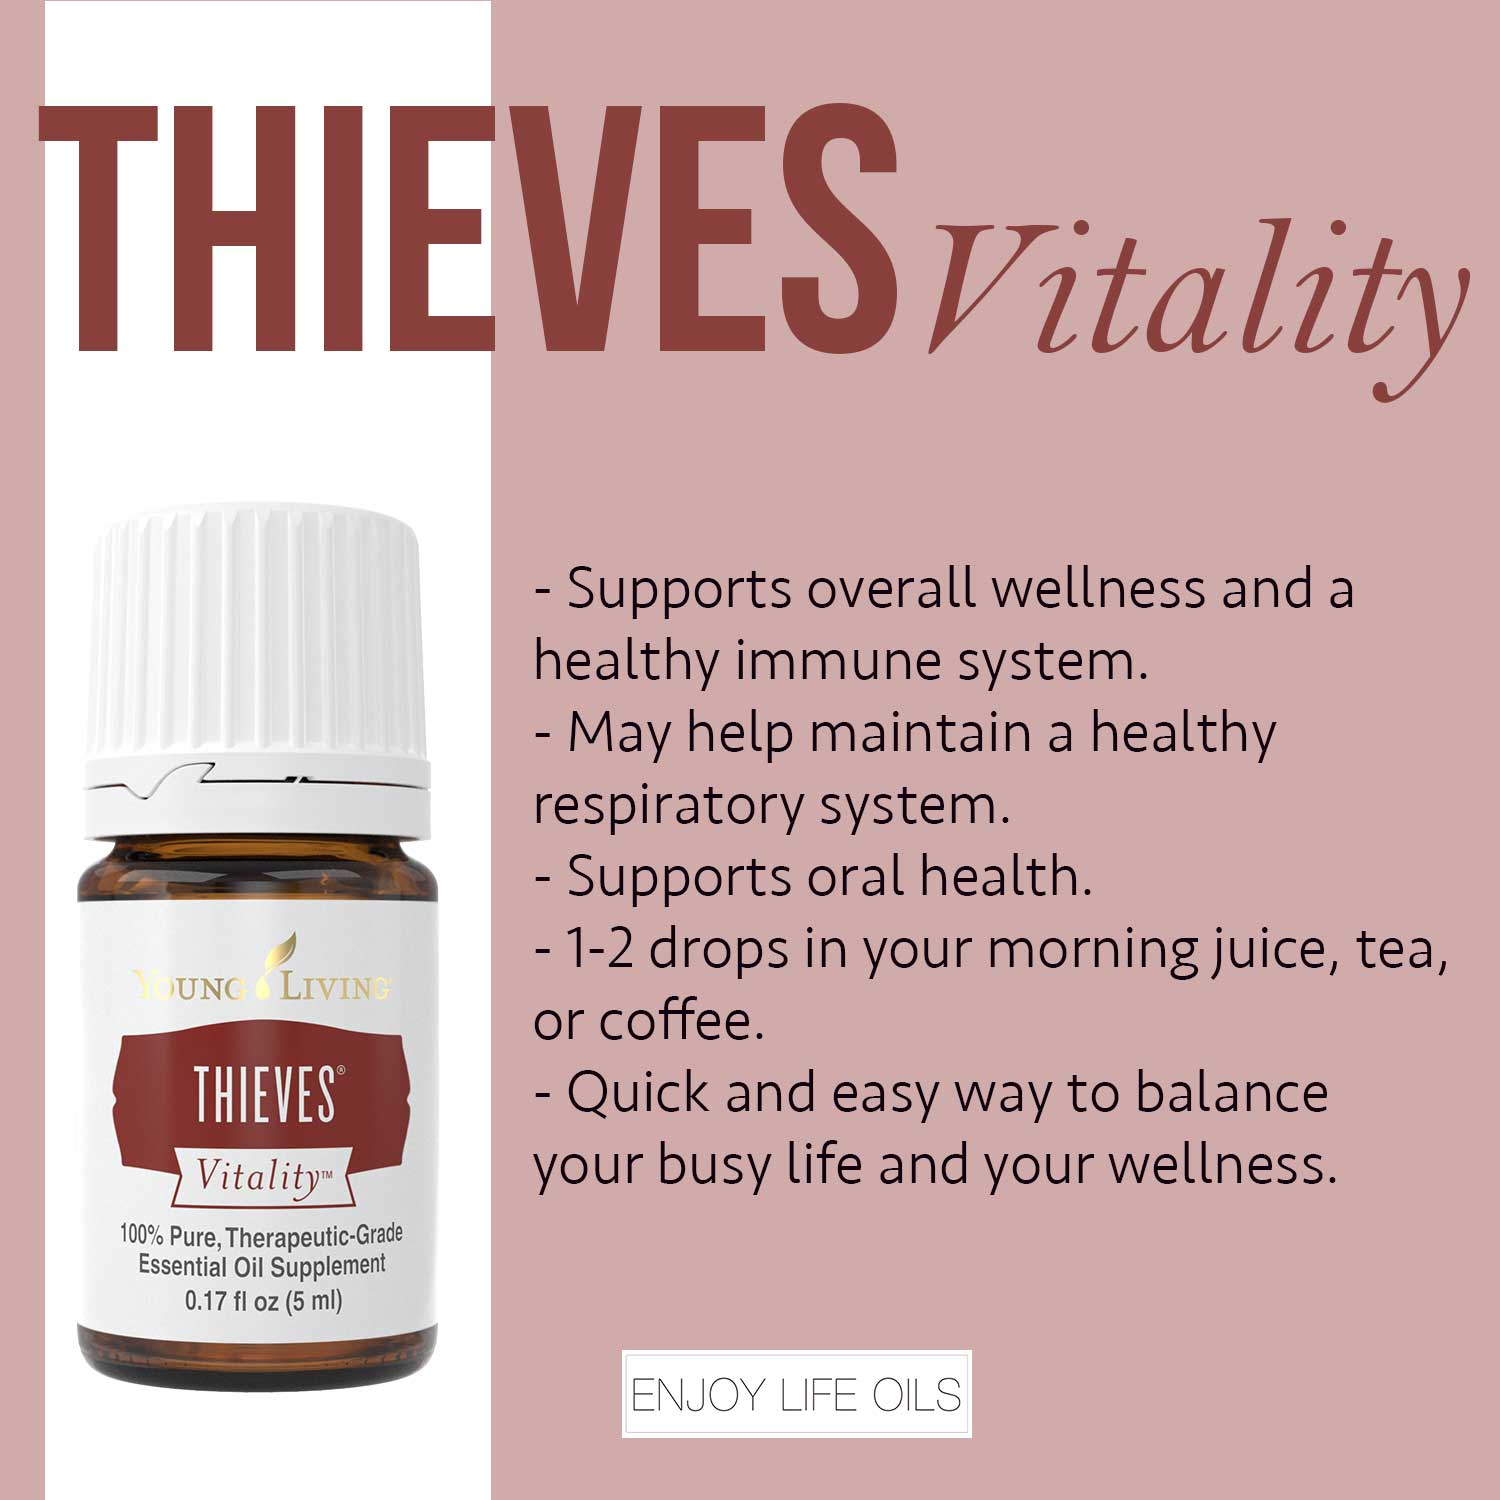 thieves-vitality-essential-oil-uses